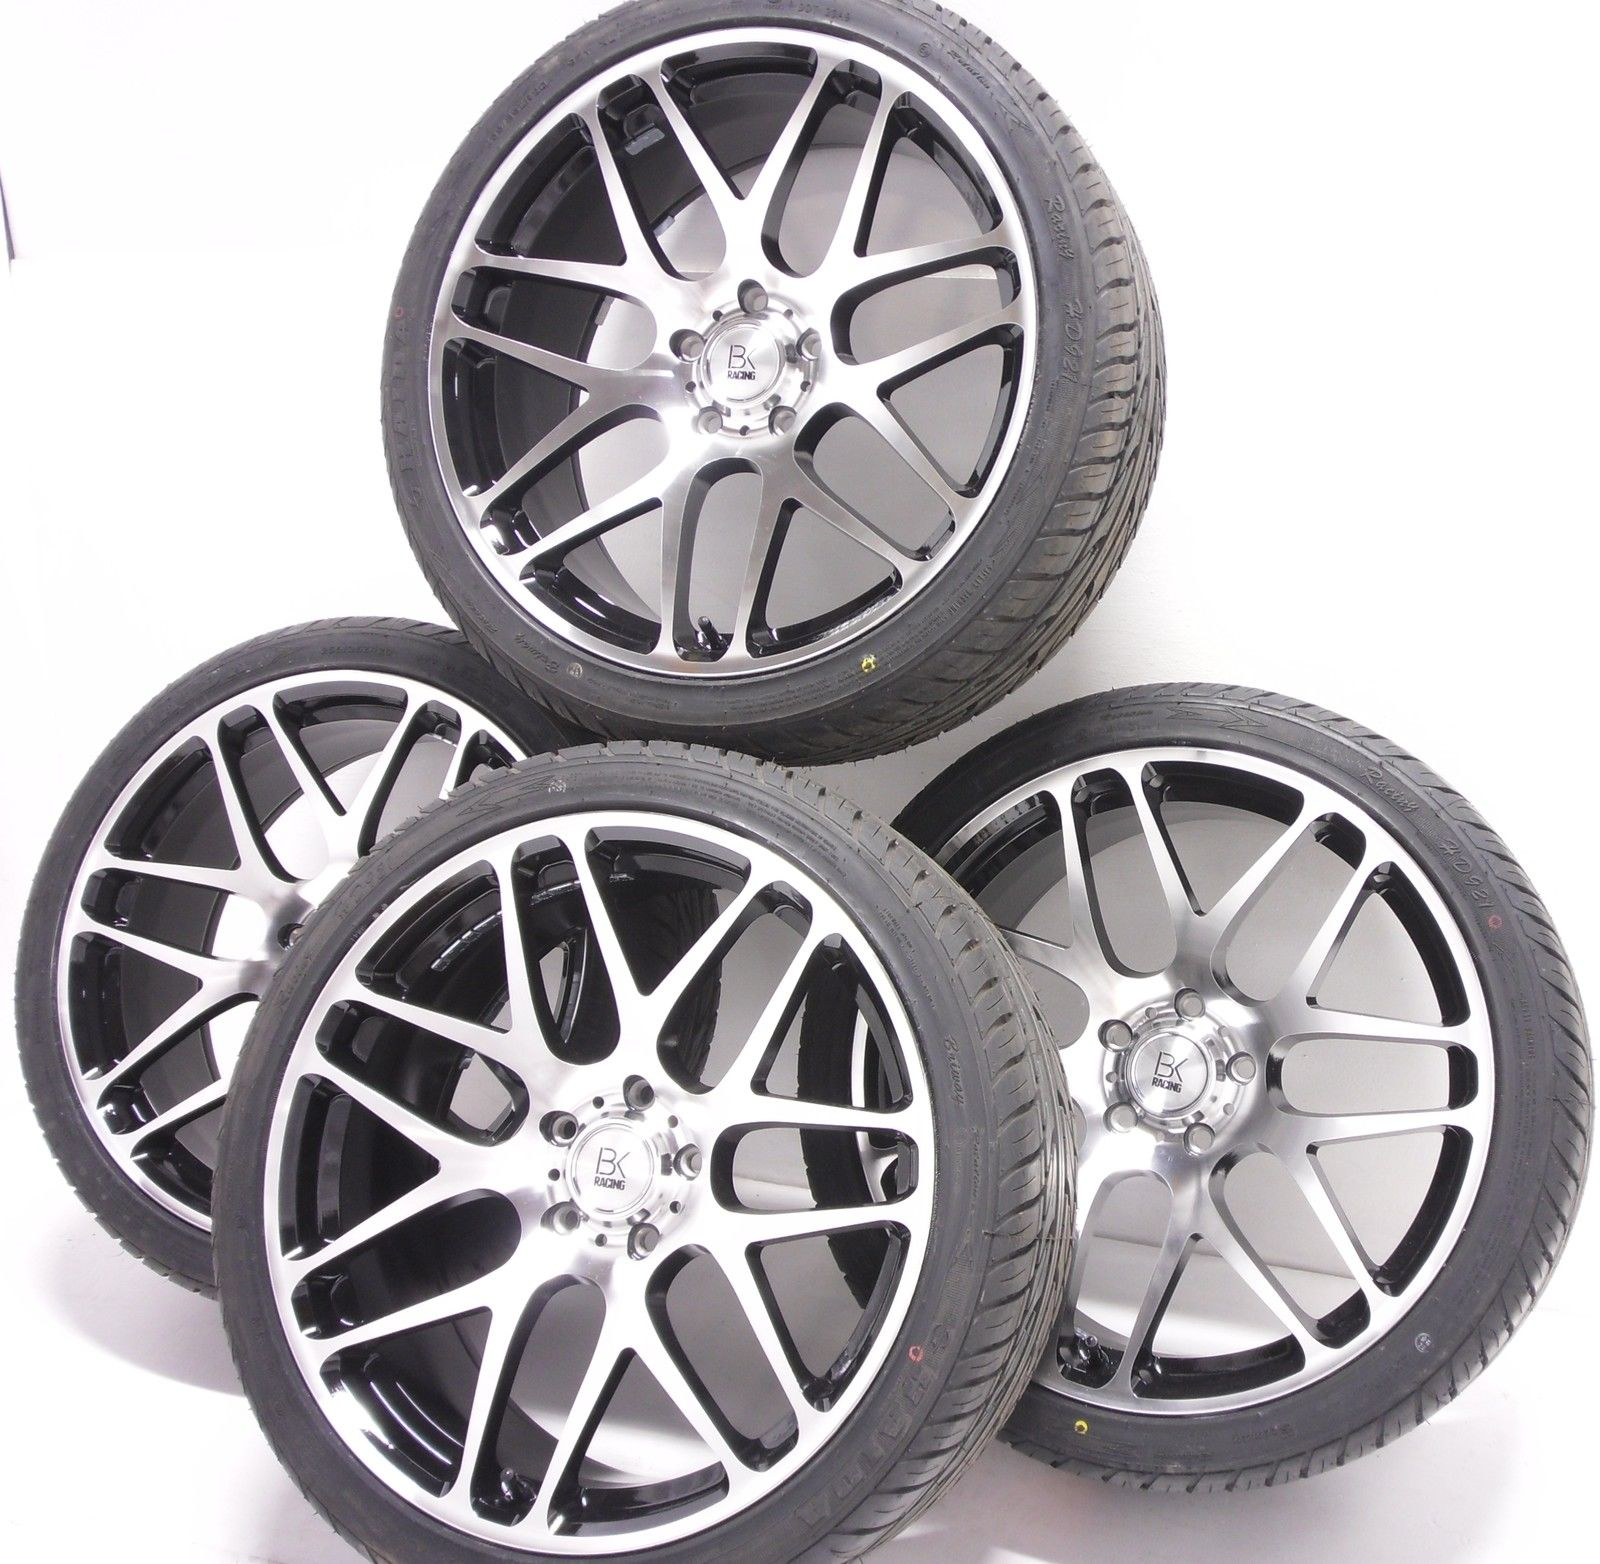 BK Racing BK170 Van Rated T5 Alloy Wheels - 20""